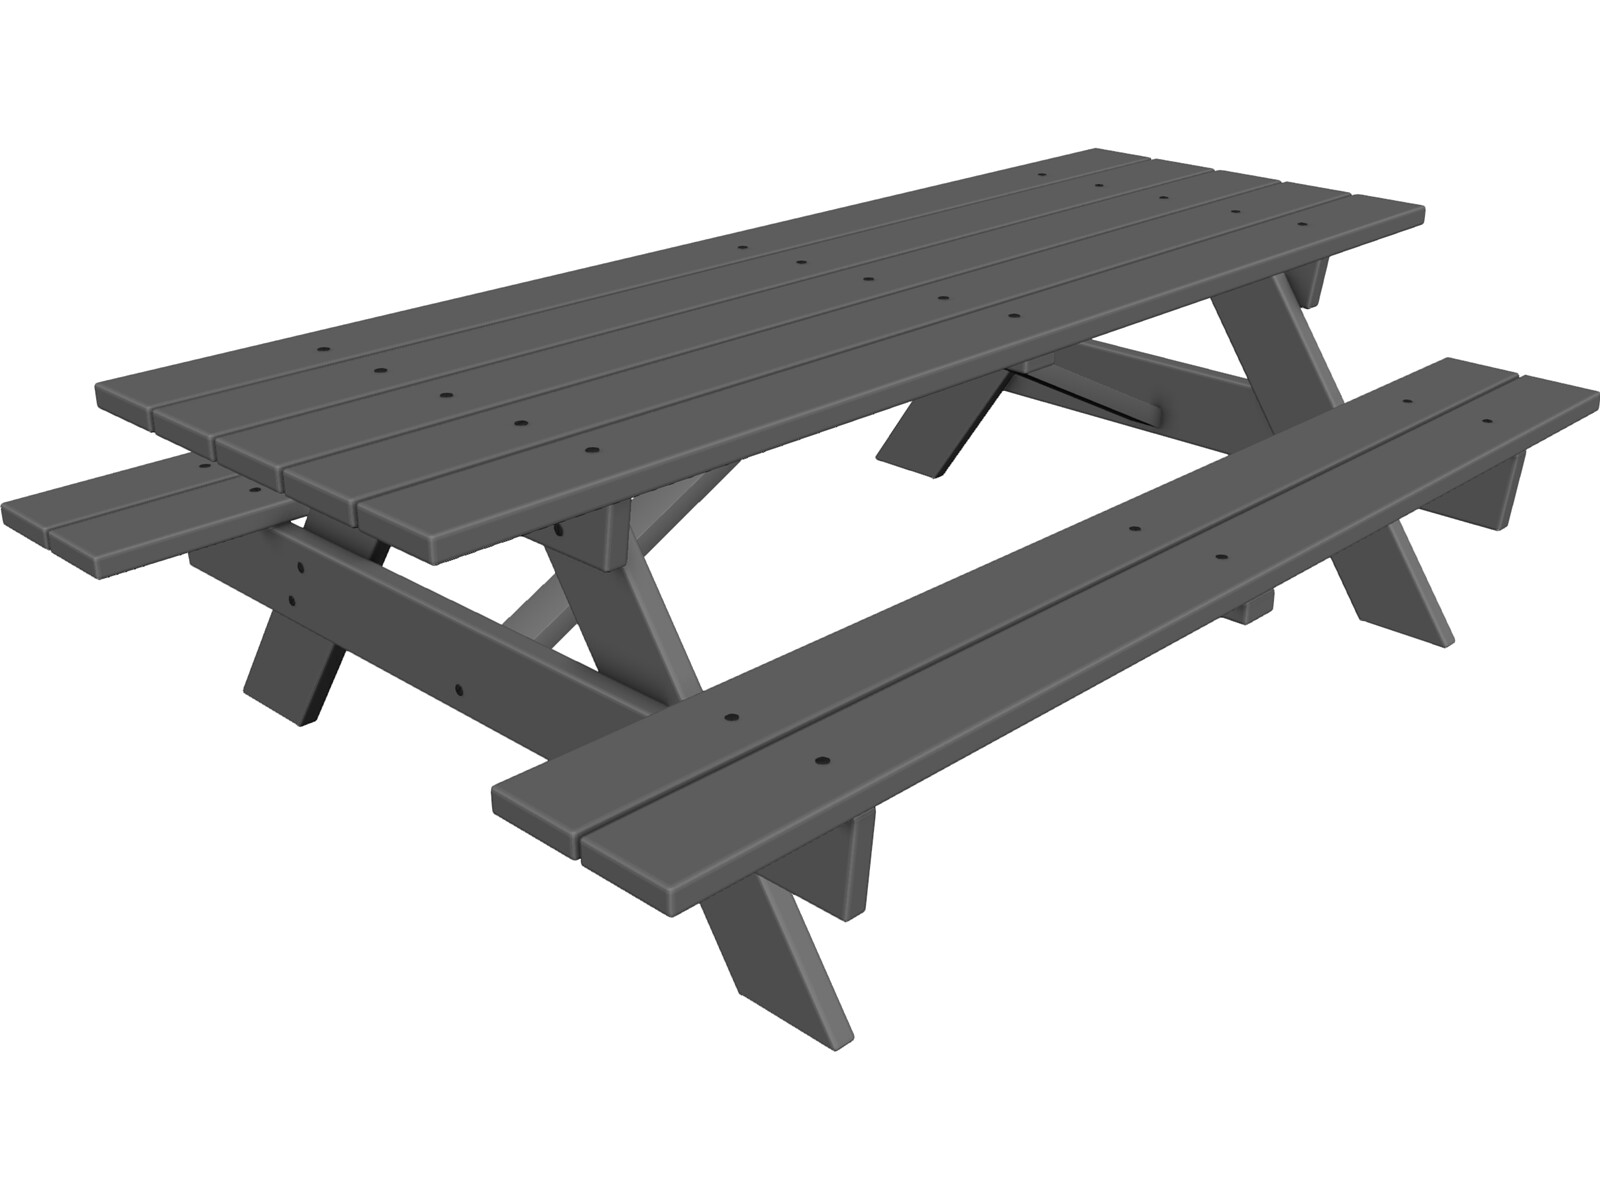 Picnic Table Cad Drawing Plans For Garden Shed Lean To Portable - Picnic table michigan